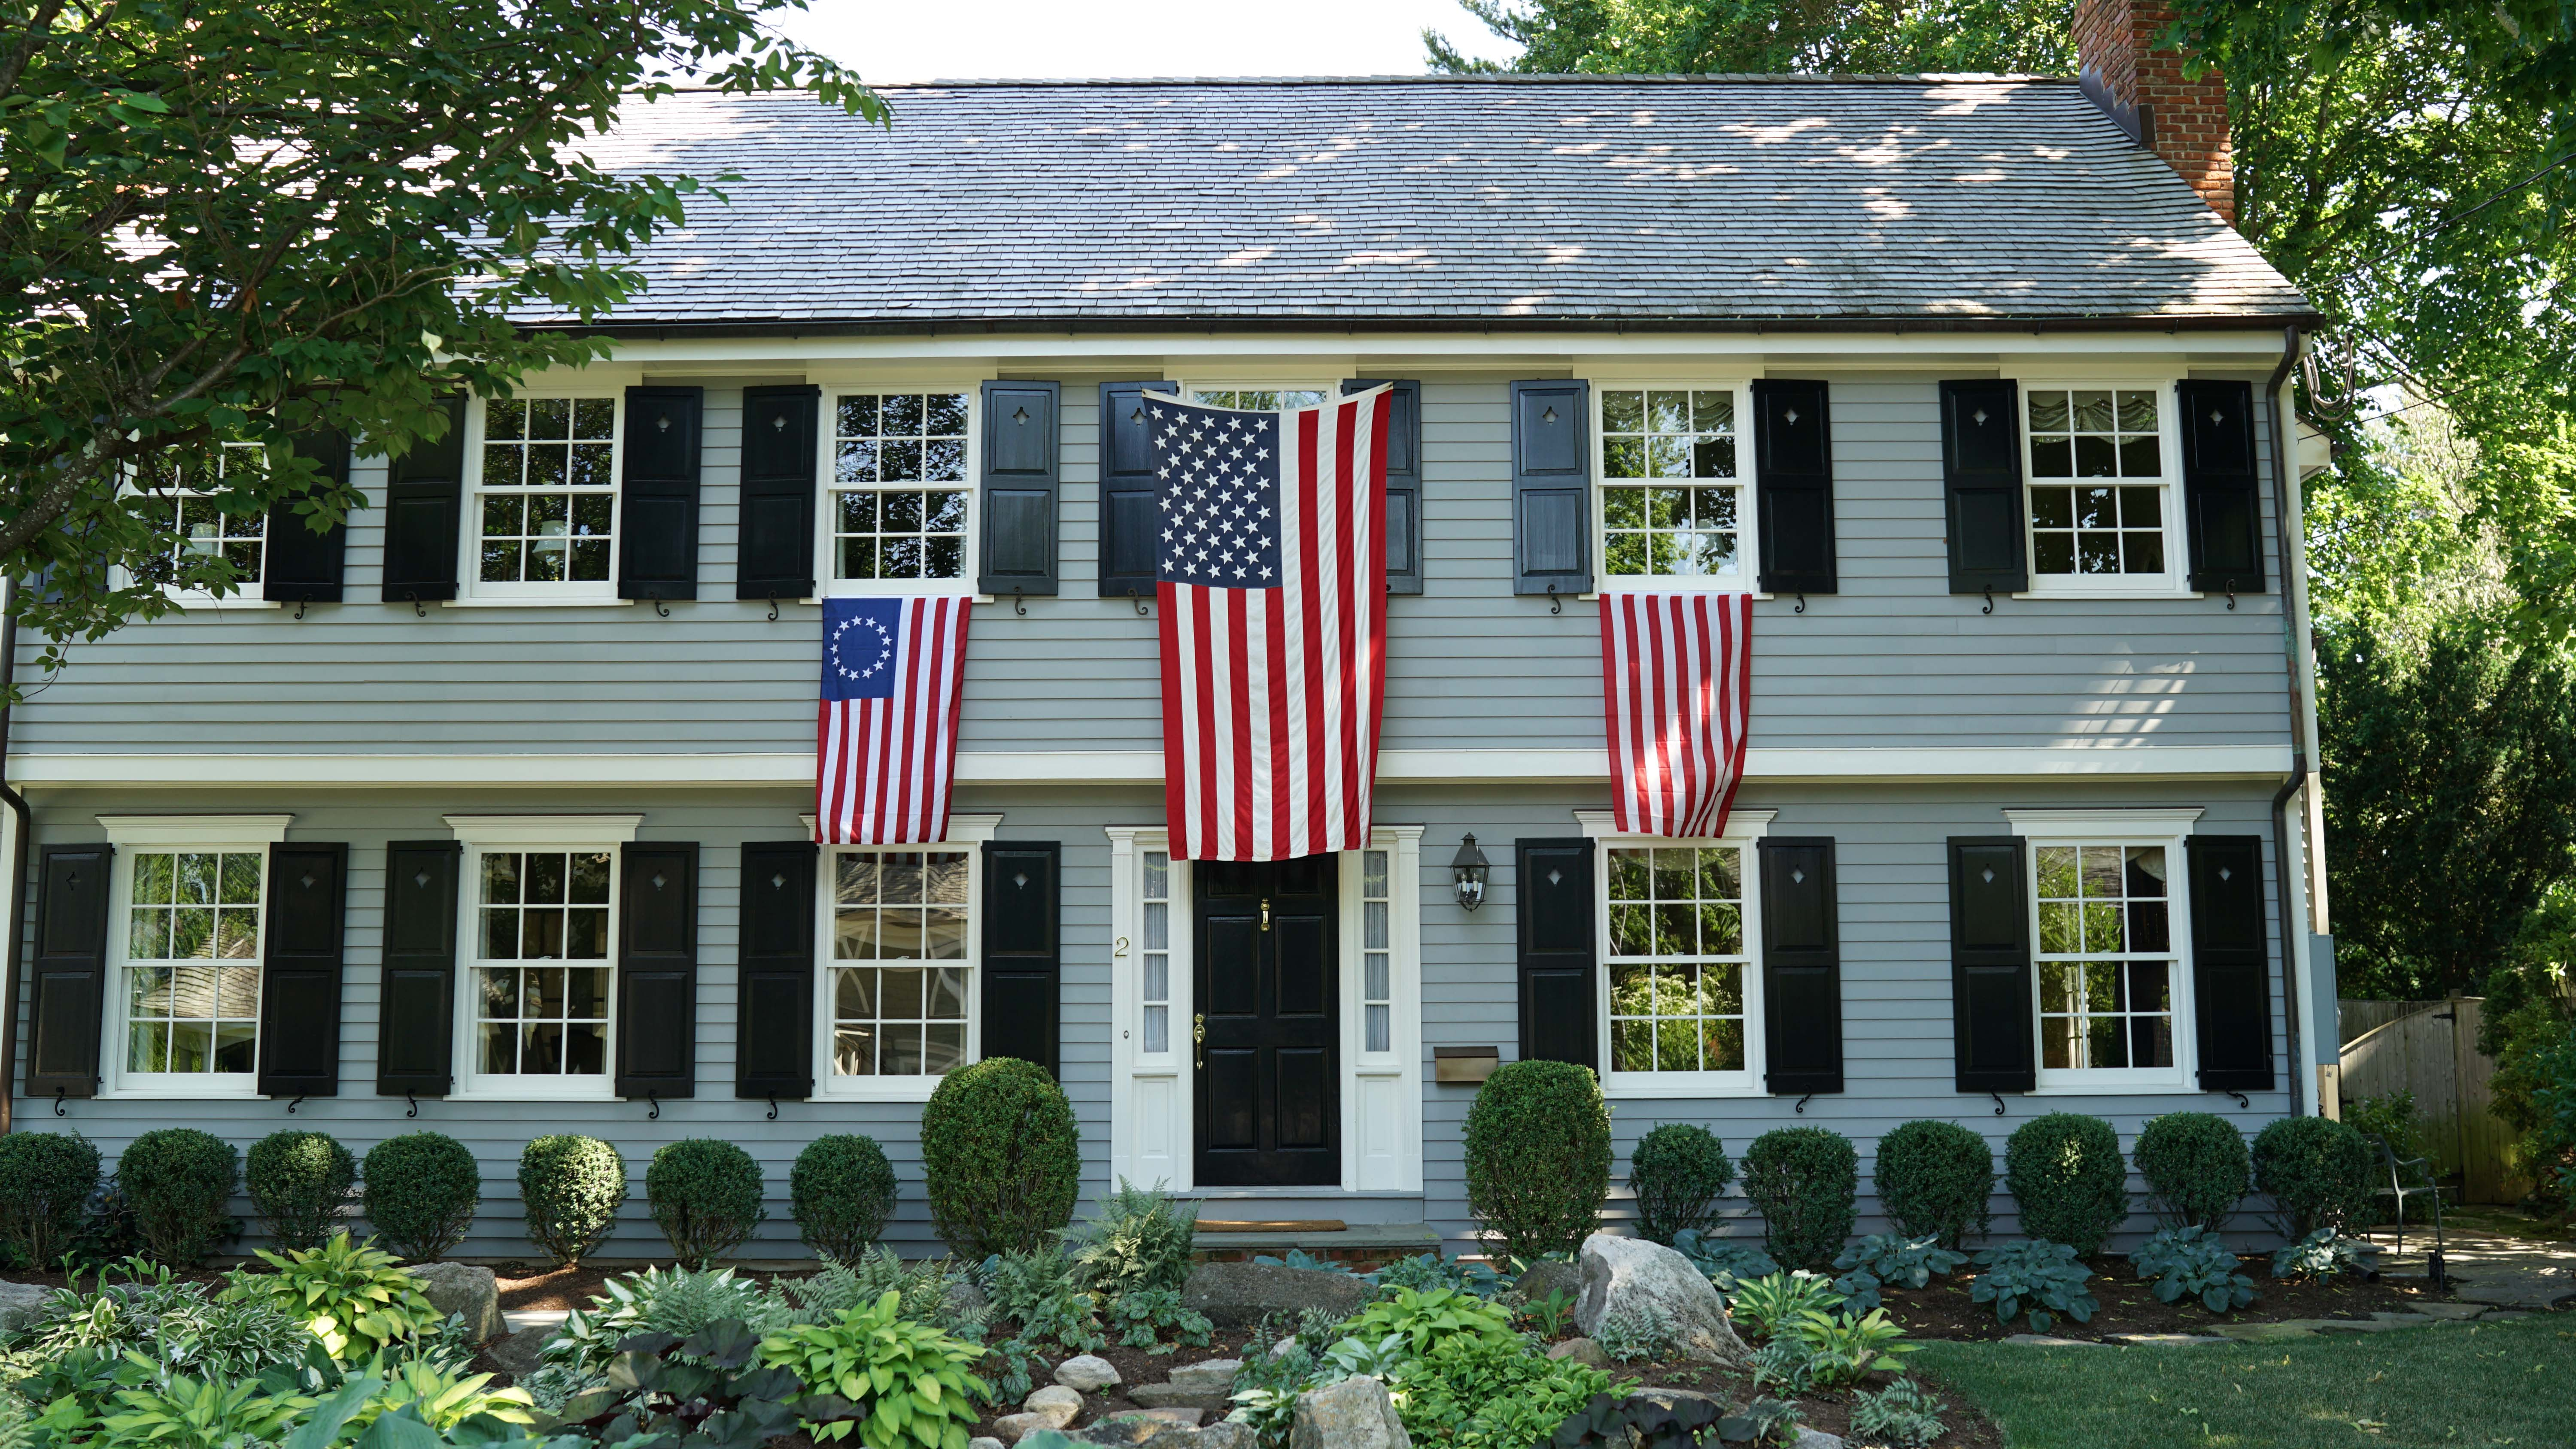 American flags on house 3